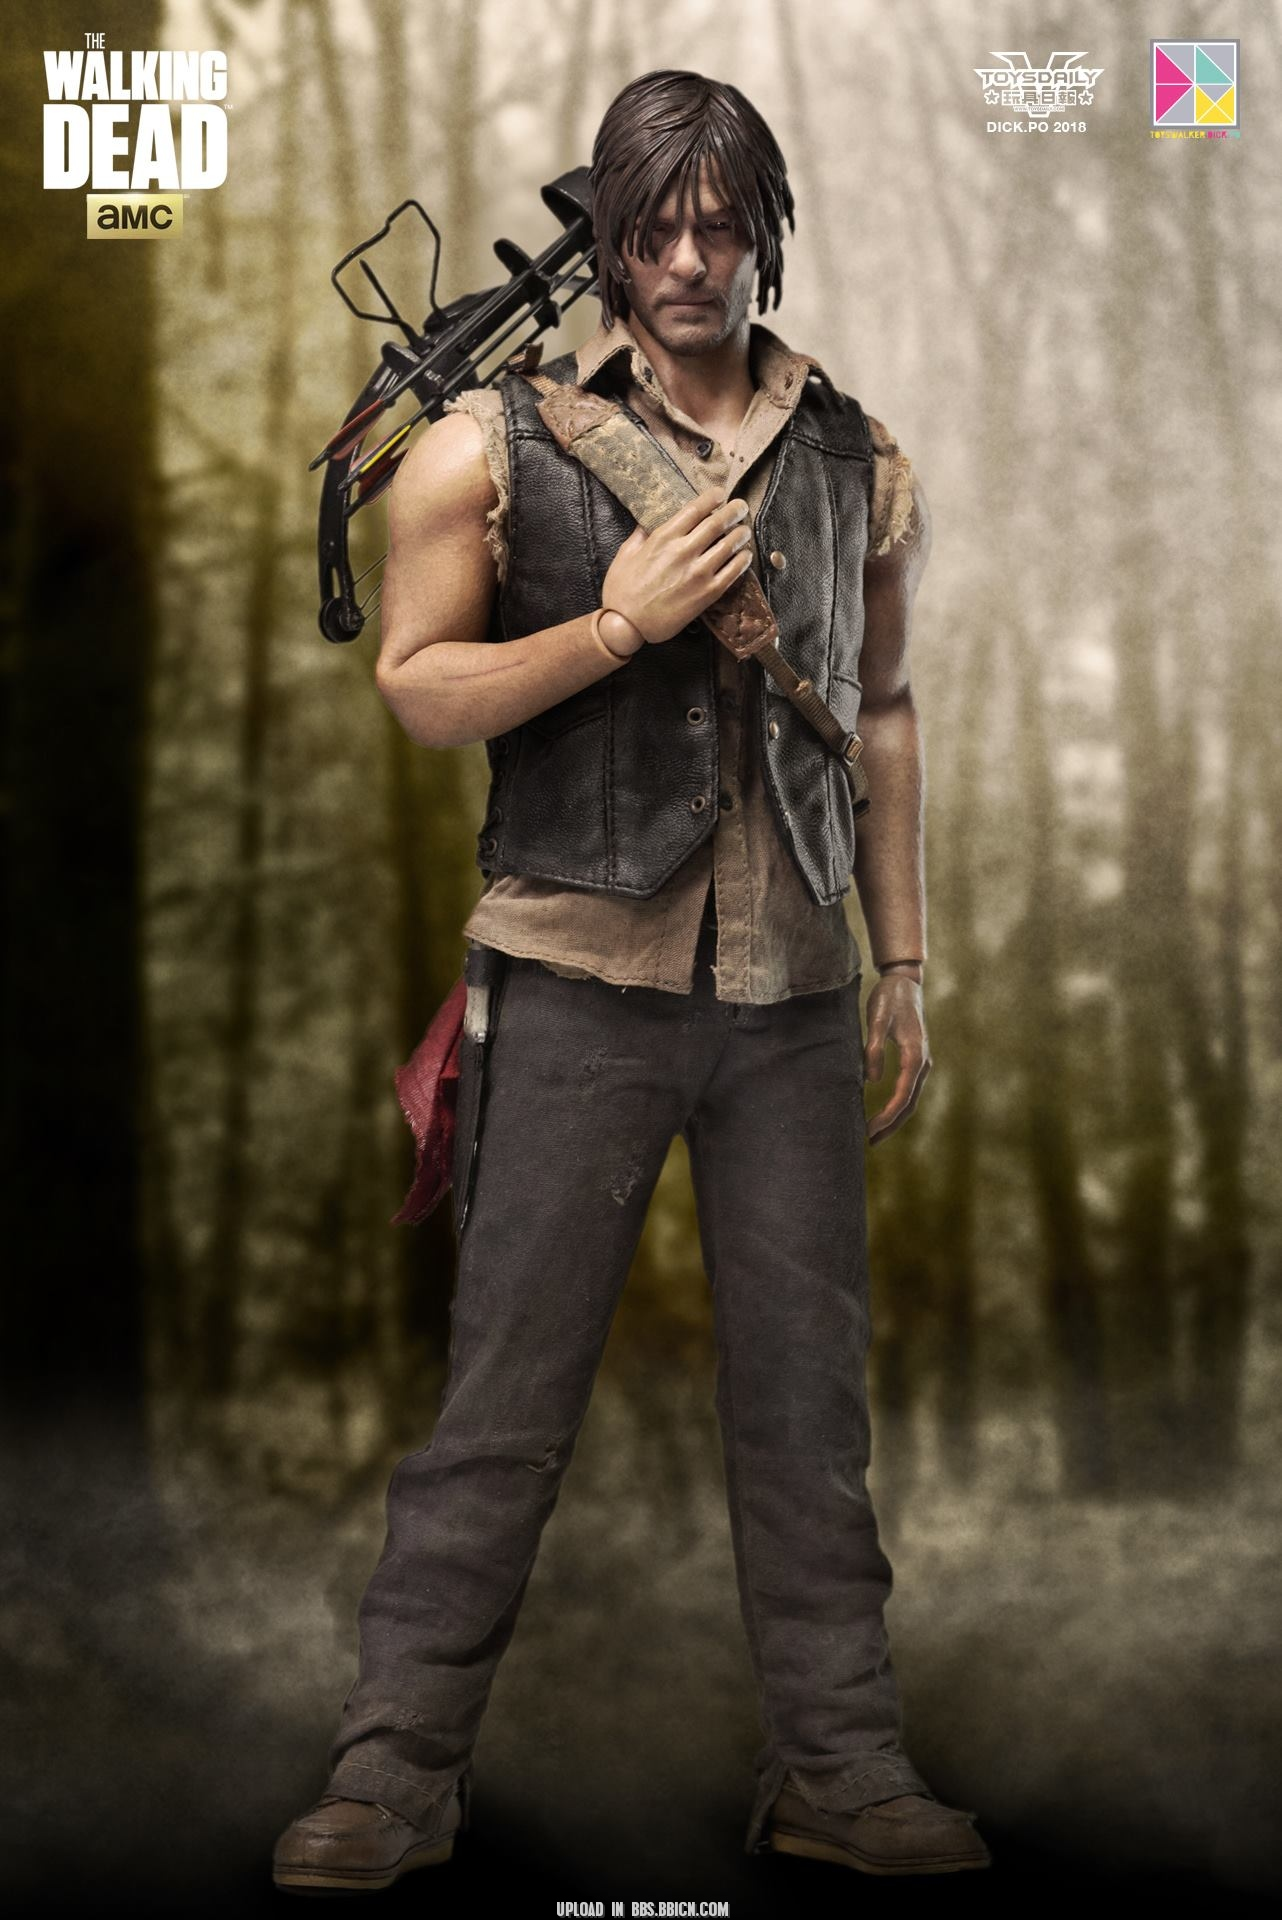 The Walking Dead Daryl Dixon5.jpg